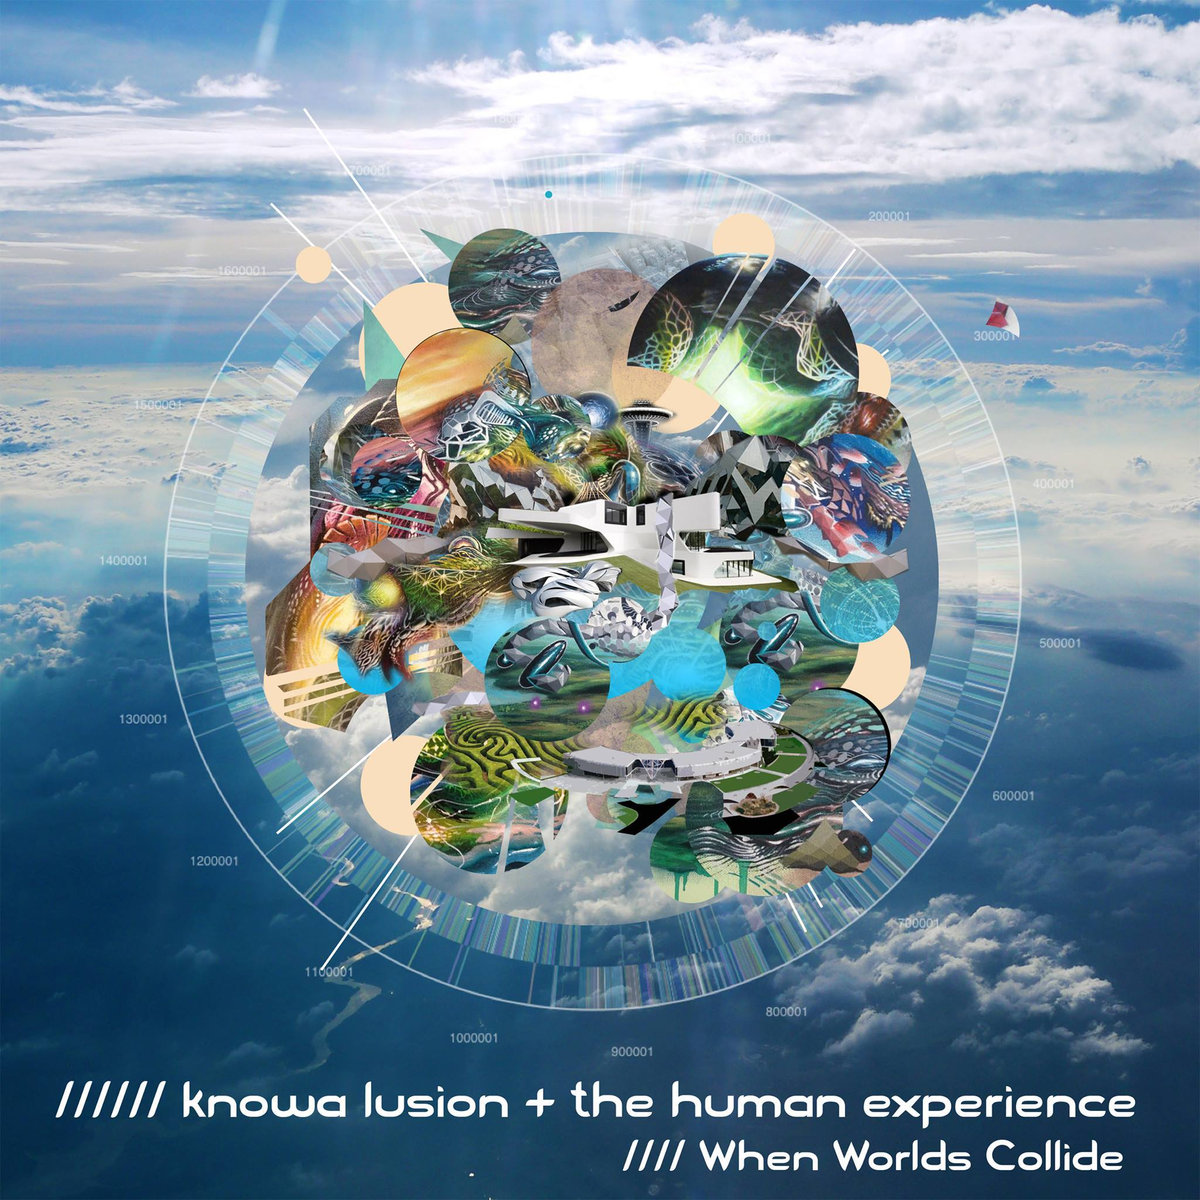 Knowa Lusion and The Human Experience feat. MC Zulu - The Other Side of the Tracks @ 'When Worlds Collide' album (bass, downtempo)